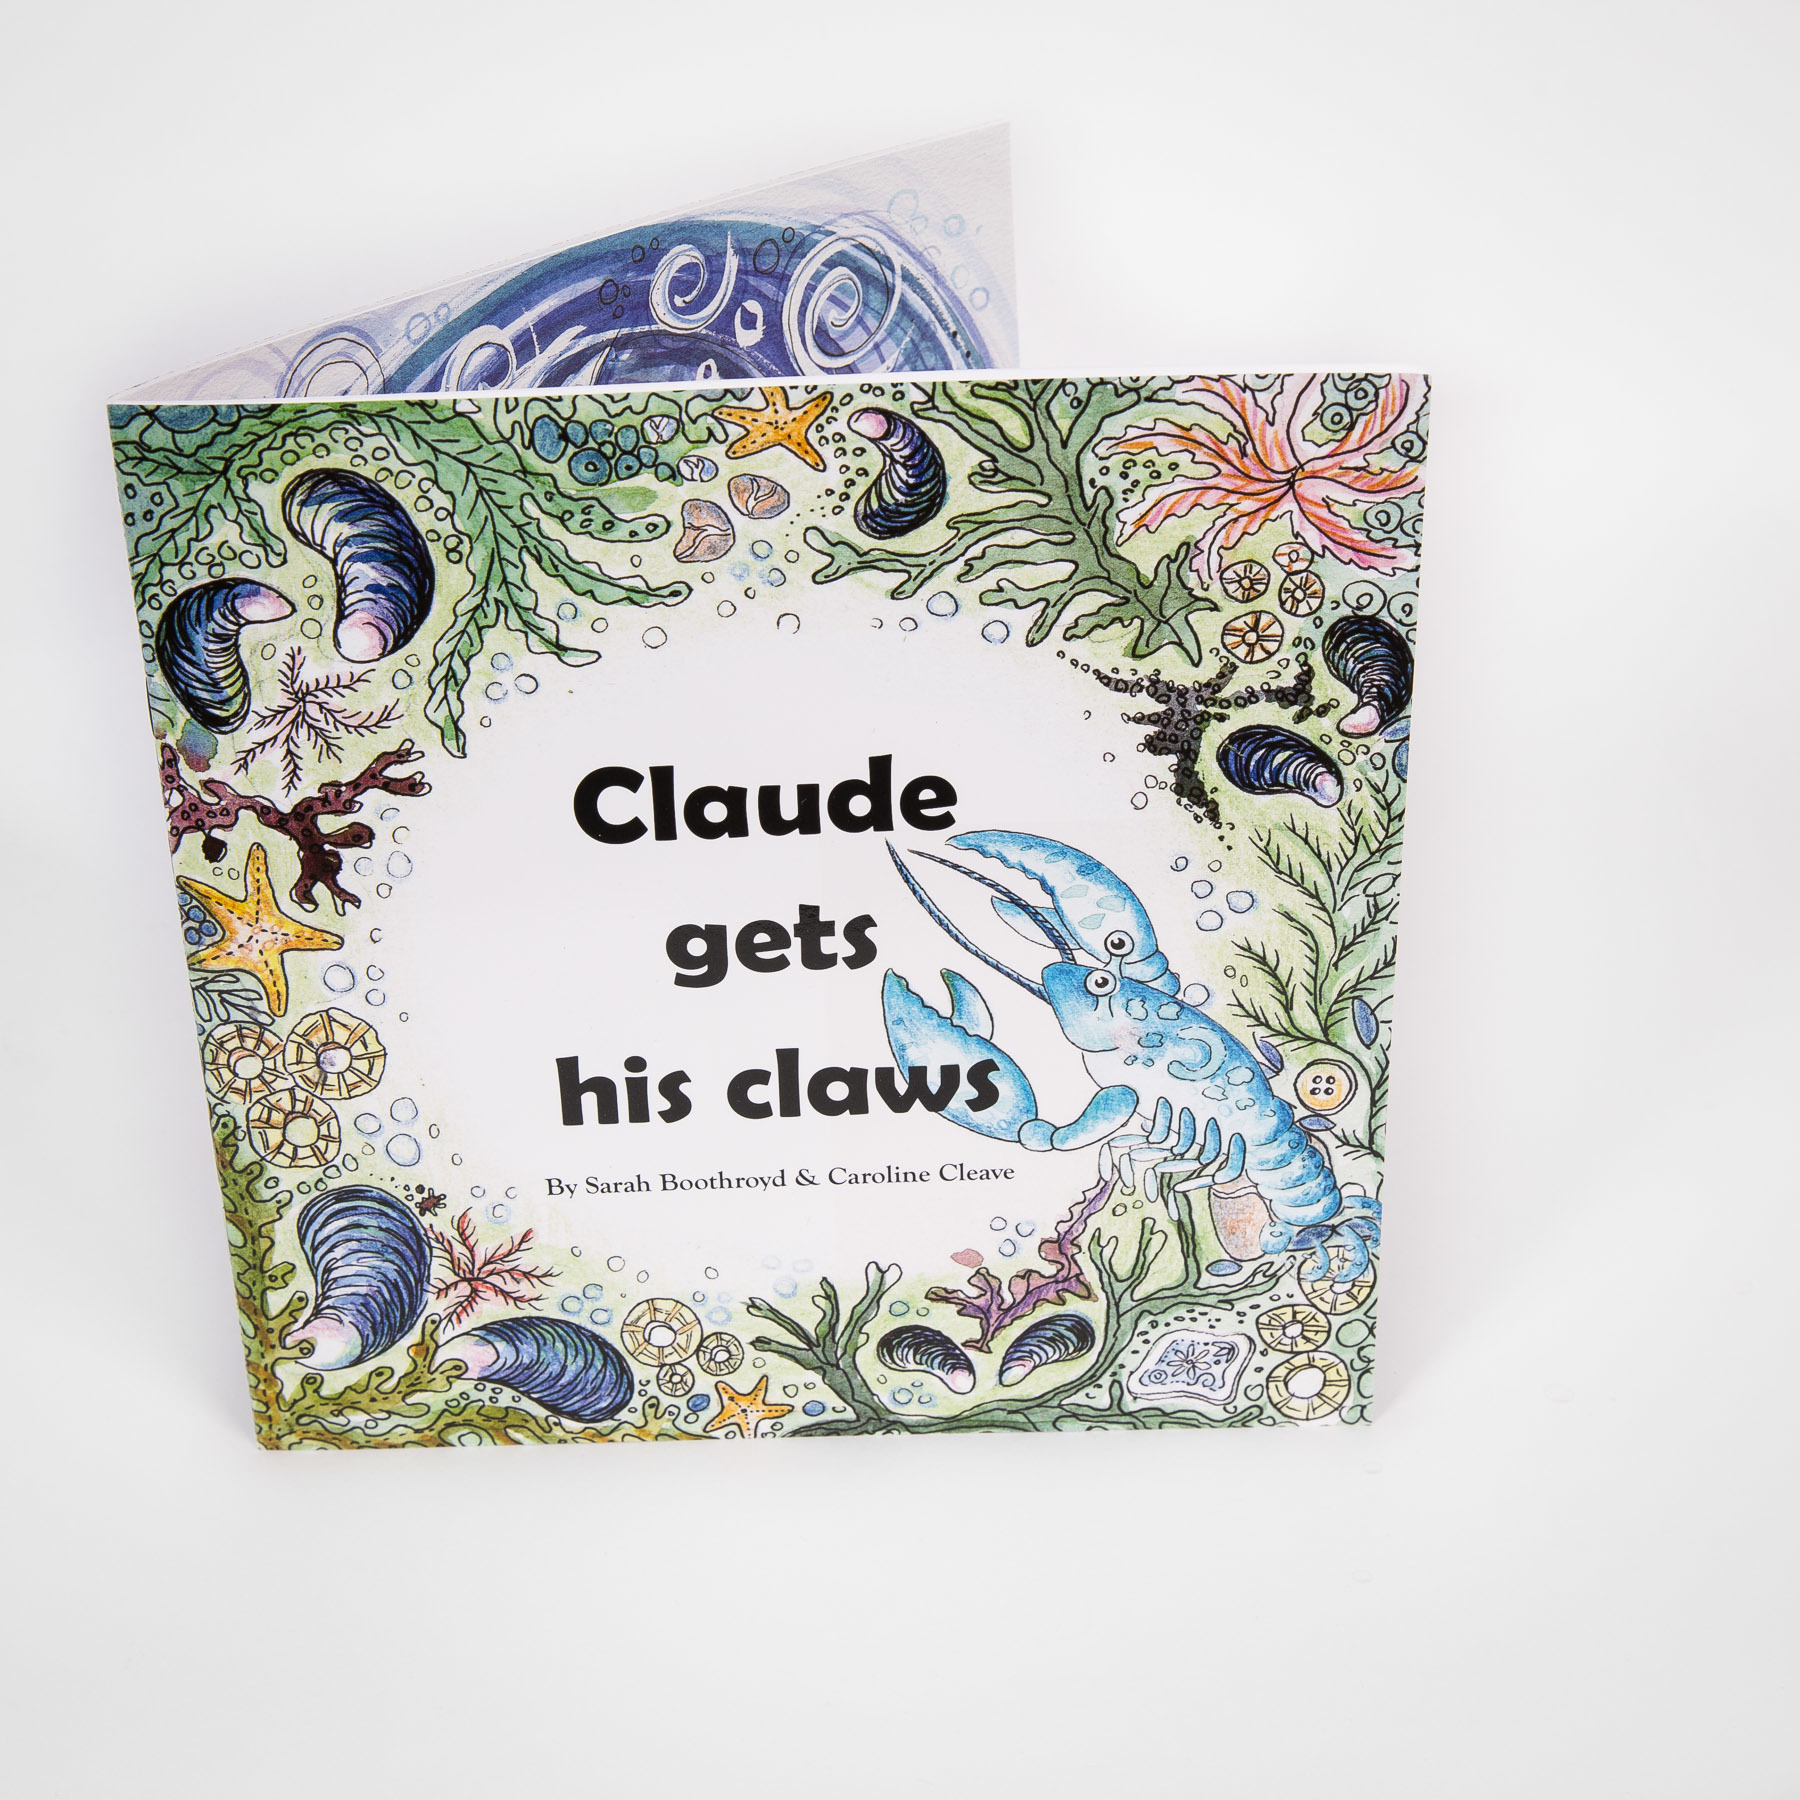 Adopt a Lobster Gift Pack with Claude gets his Claws children's book